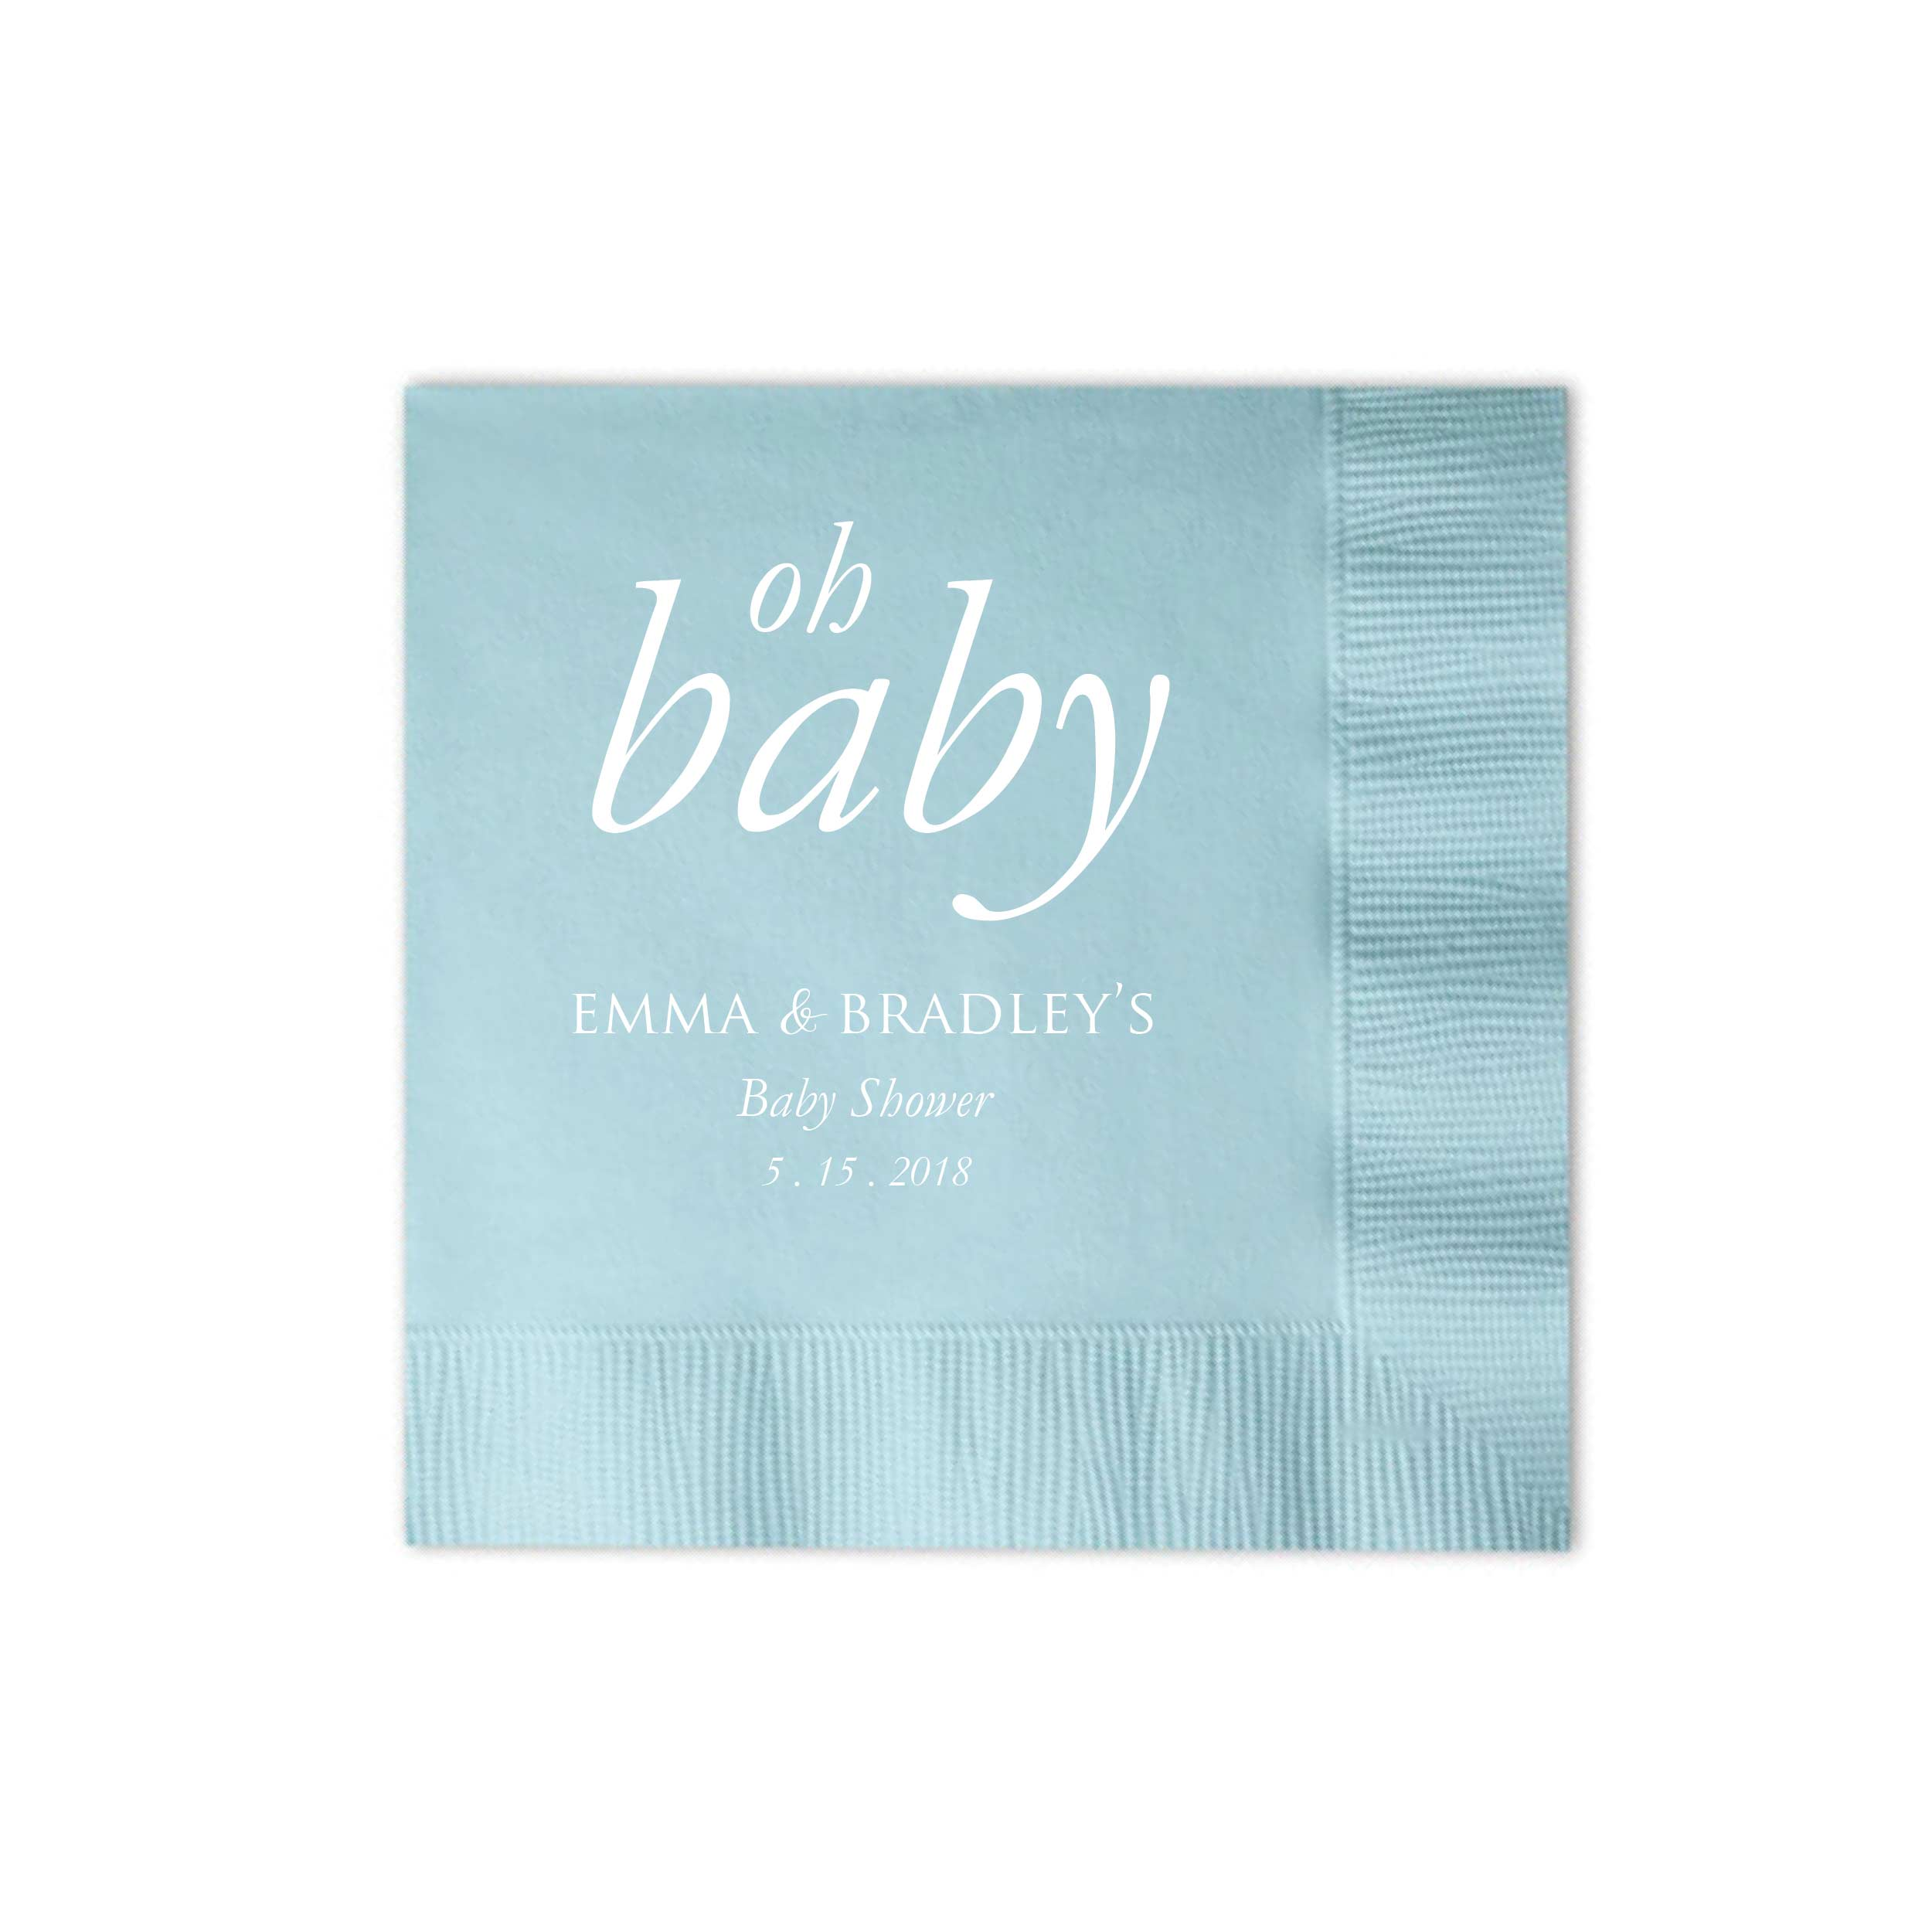 Personalized Baby Shower Napkins   Set Of 50 Oh Baby Napkin   Nora  Collection   Tea